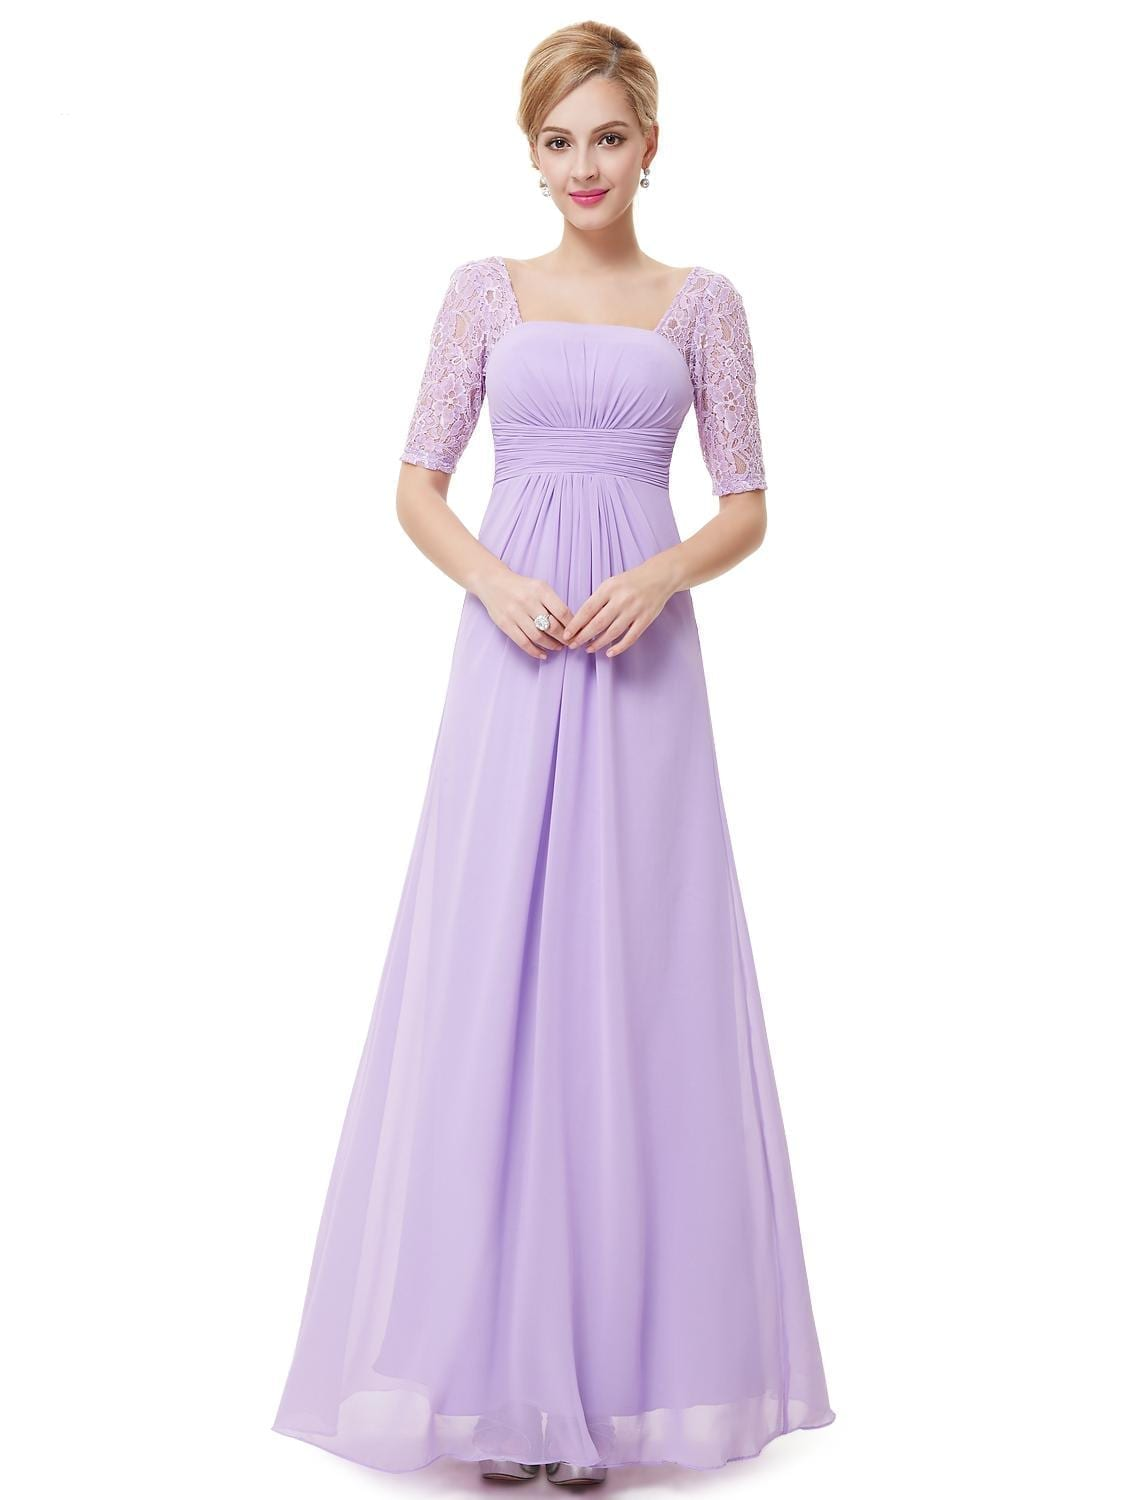 Sexy Fashion Lilac Purple Lace Square Neckline Long Prom ...